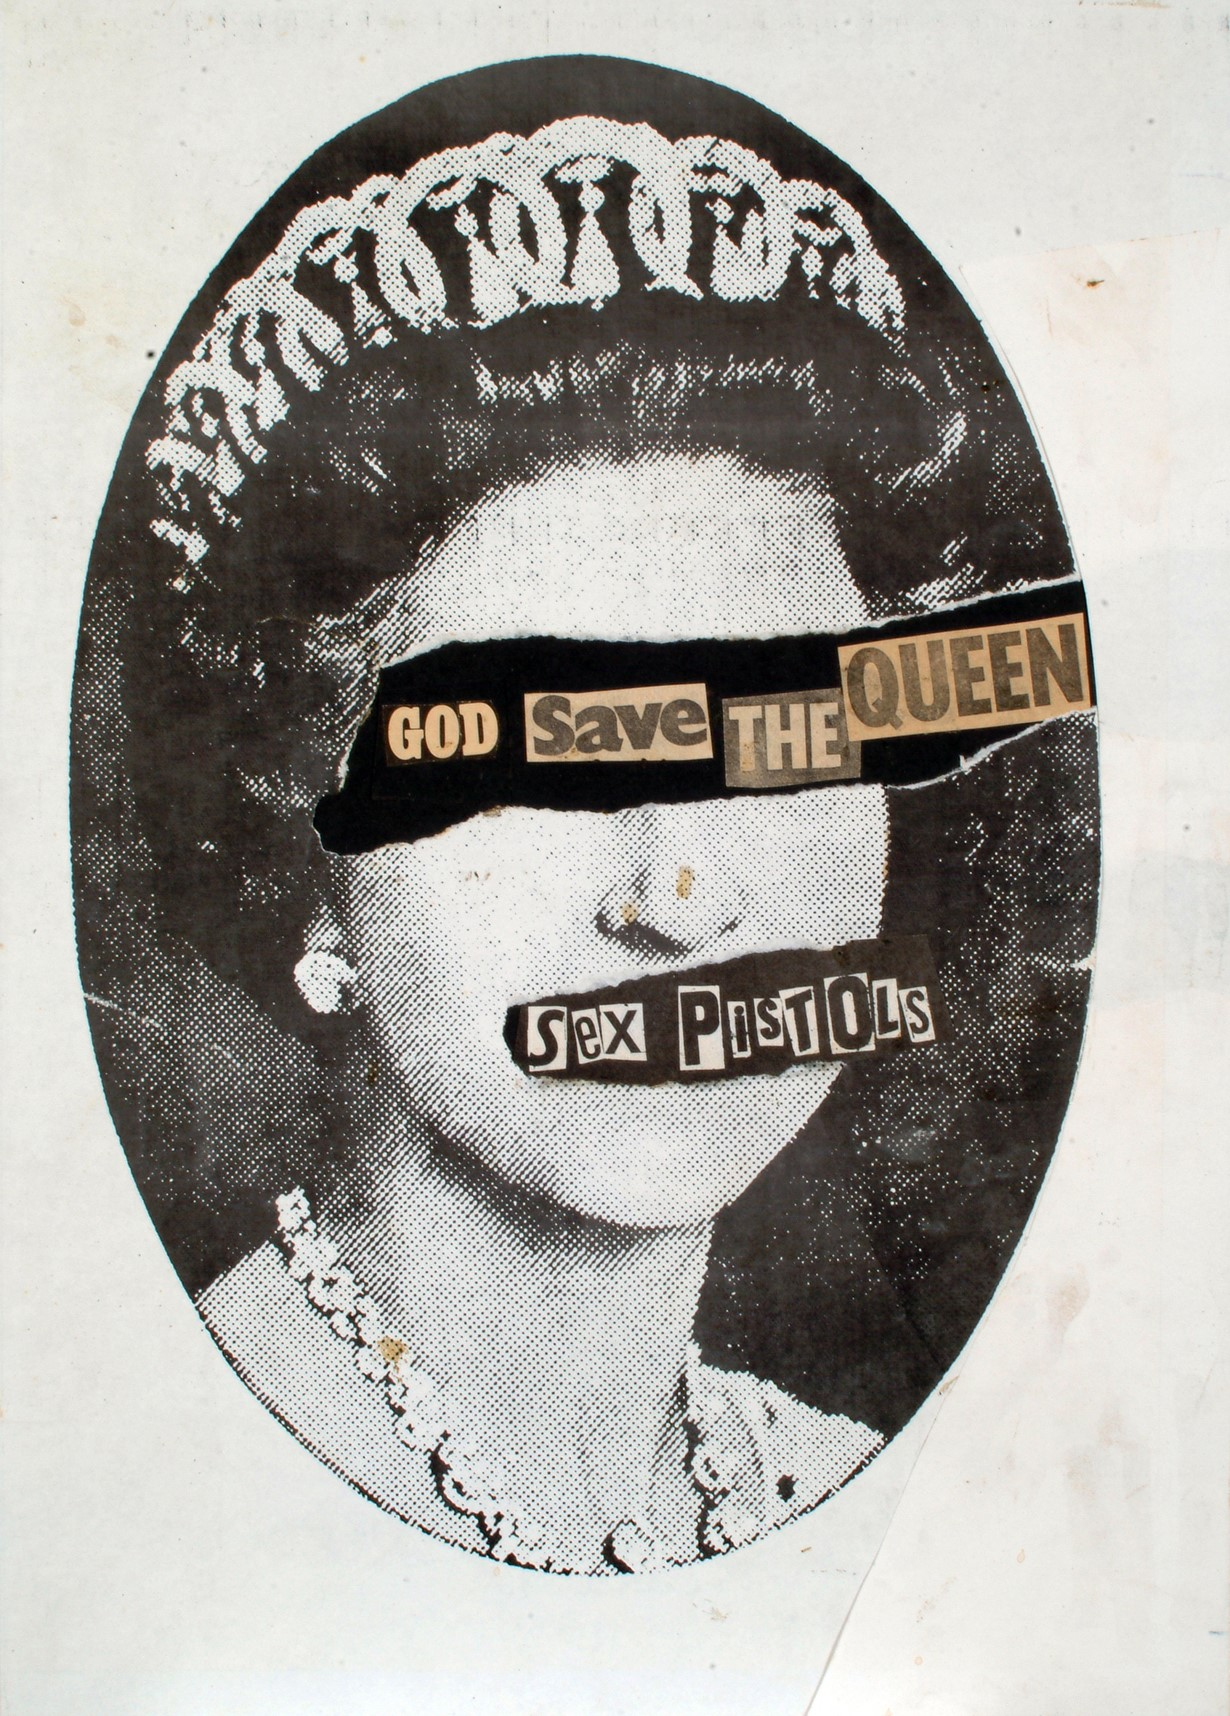 Sex pistols - god save the queen images 69